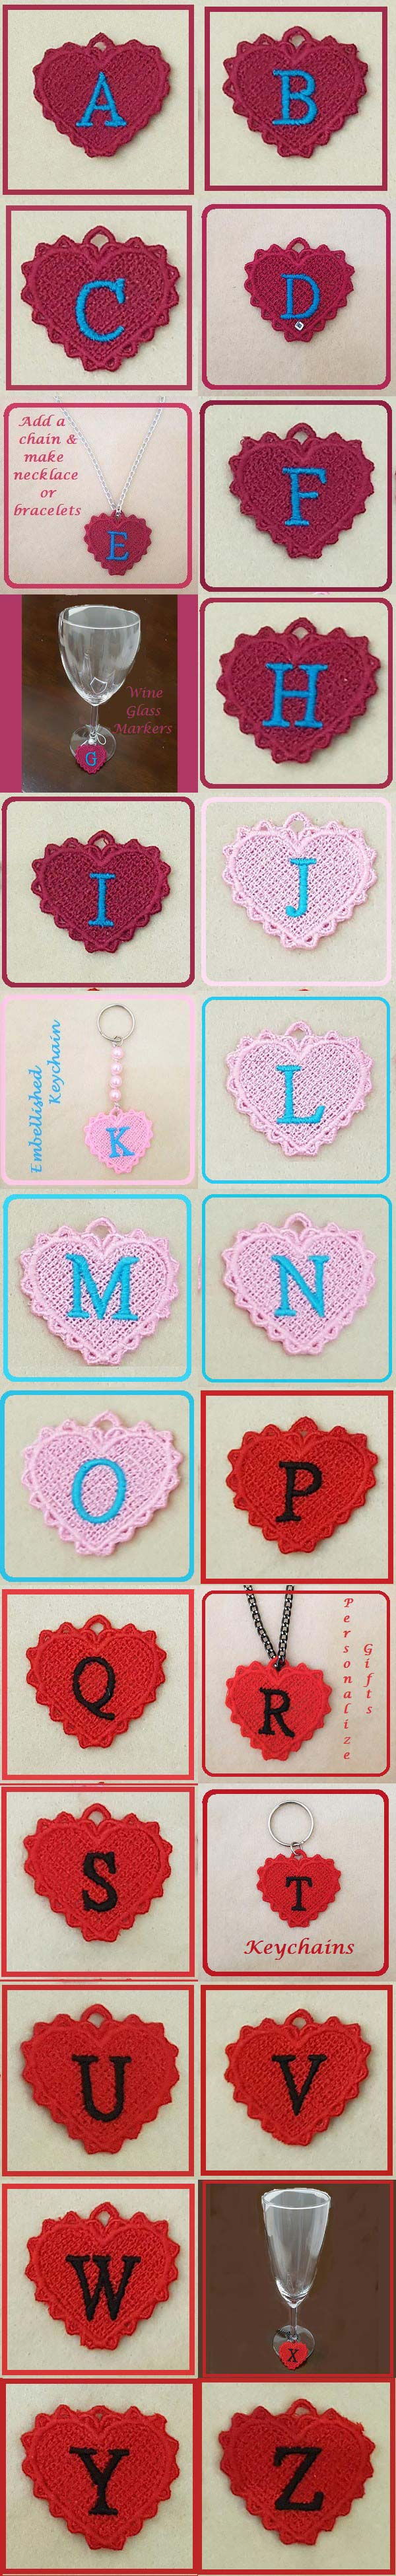 FSL Heart Alphabet Charms Embroidery Machine Design Details